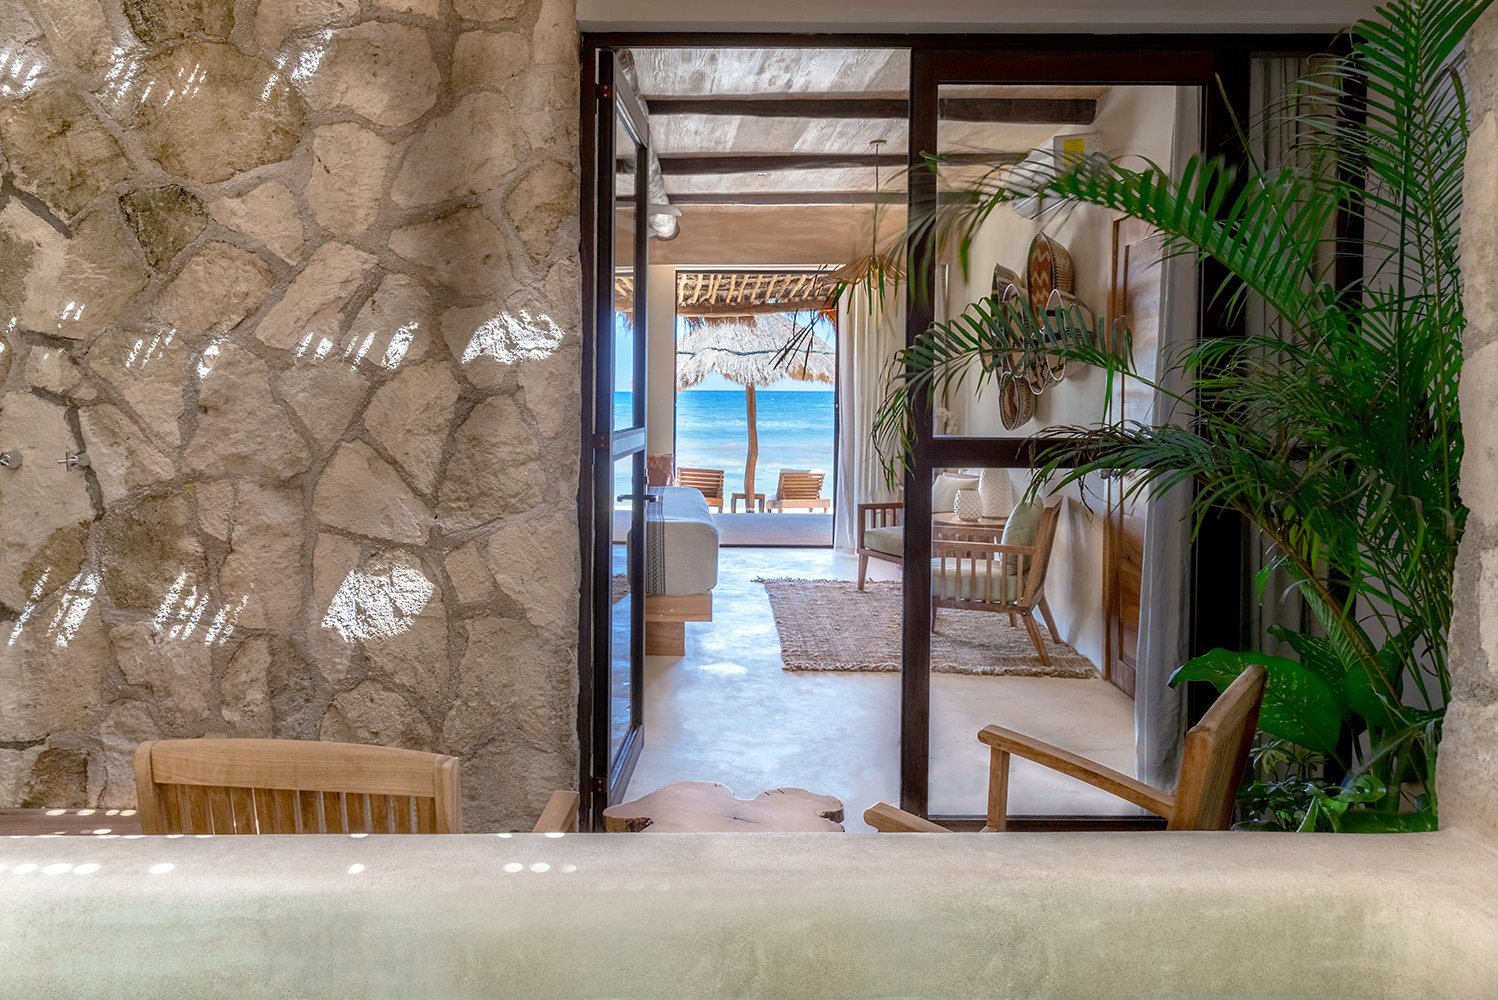 Guests staying in the new rooms also have their own private jungle garden courtyard with a plunge pool and an outdoor shower.